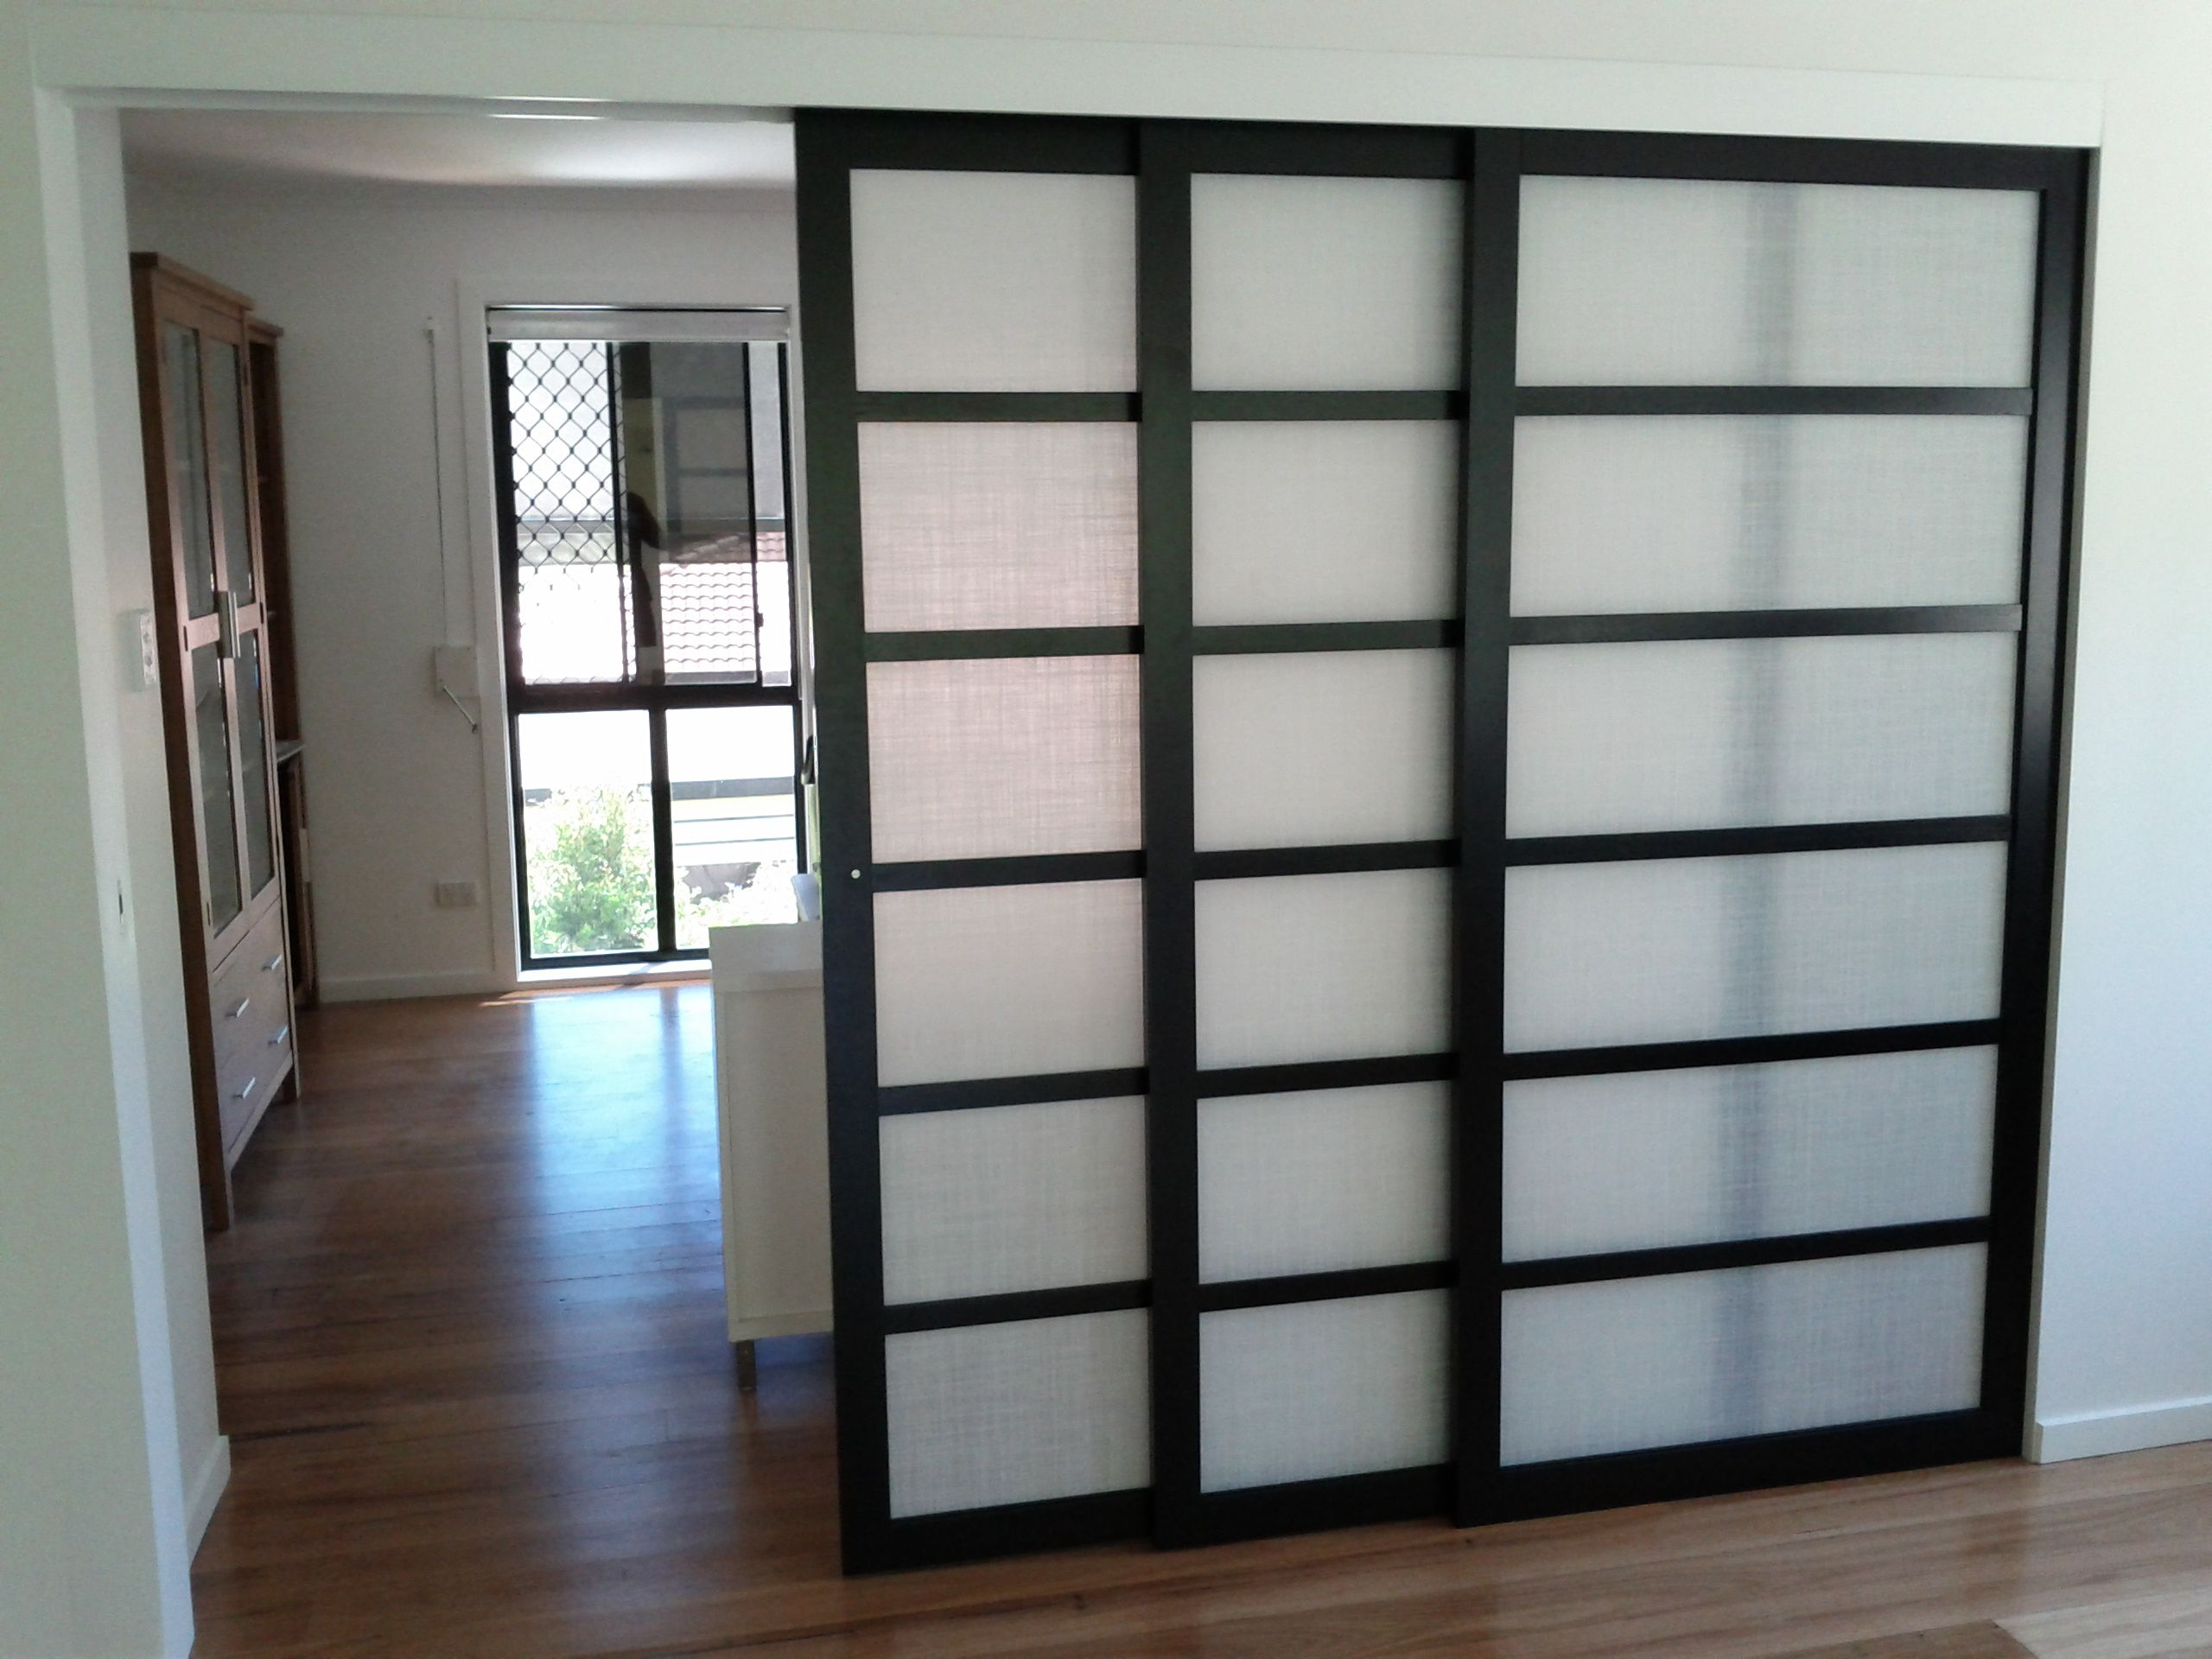 Sliding Anese Doors And Room Dividers Go To Chinesefurniture For Even More Amazing Furniture Home Decoration Tips